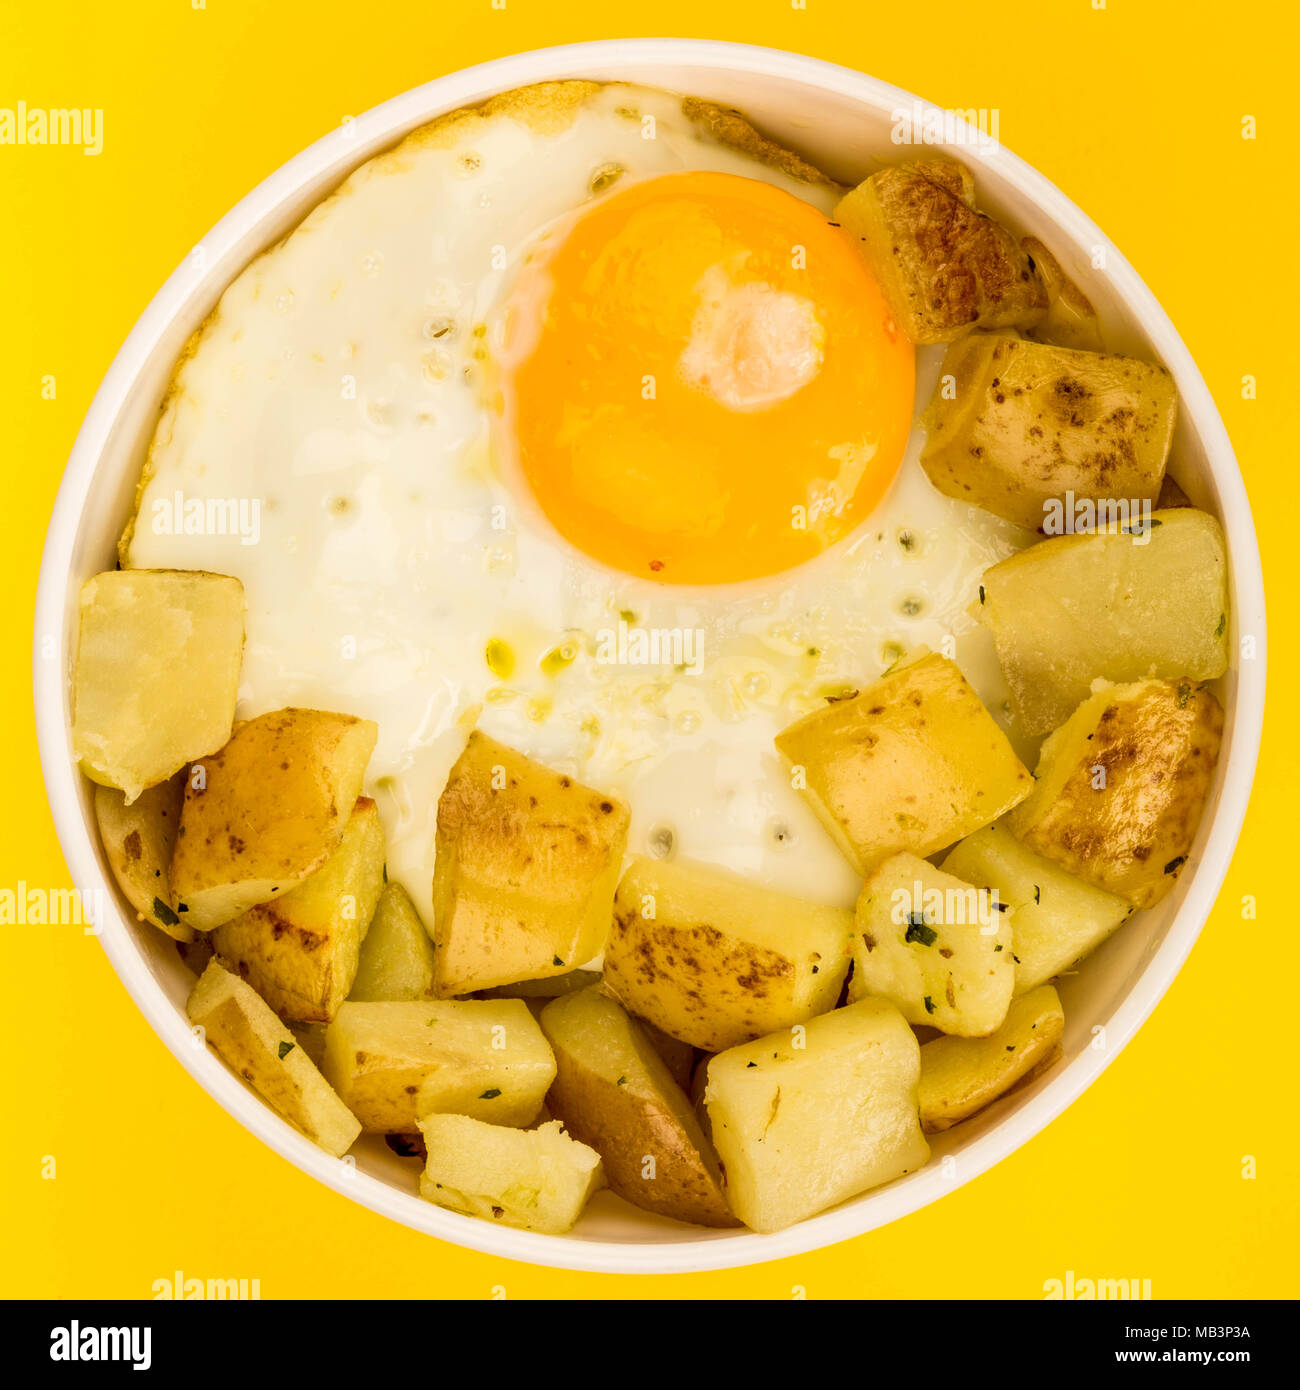 Fried Egg With Fried Potatoes Breakfast In A Bowl Against A Yellow Background - Stock Image